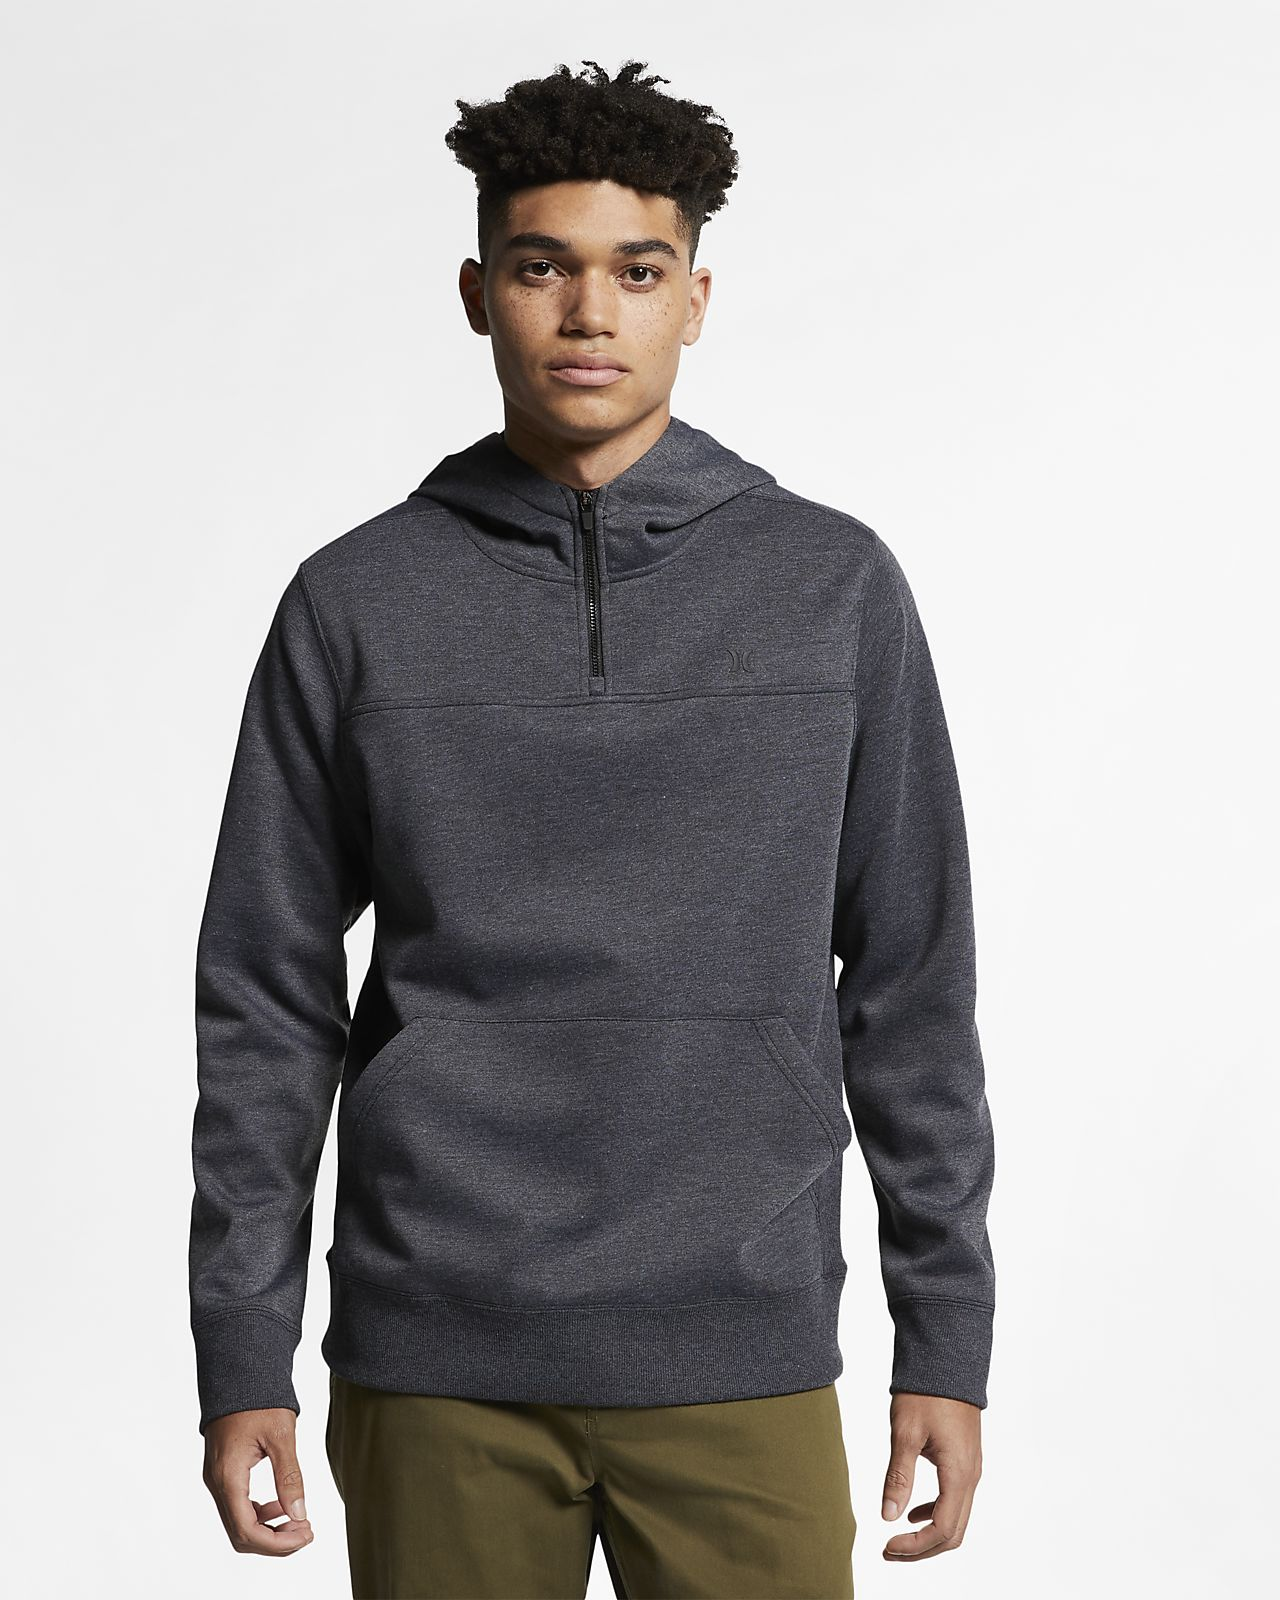 Sweat à capuche en tissu Fleece à 1/4 de zip Hurley Therma Protect Plus pour Homme